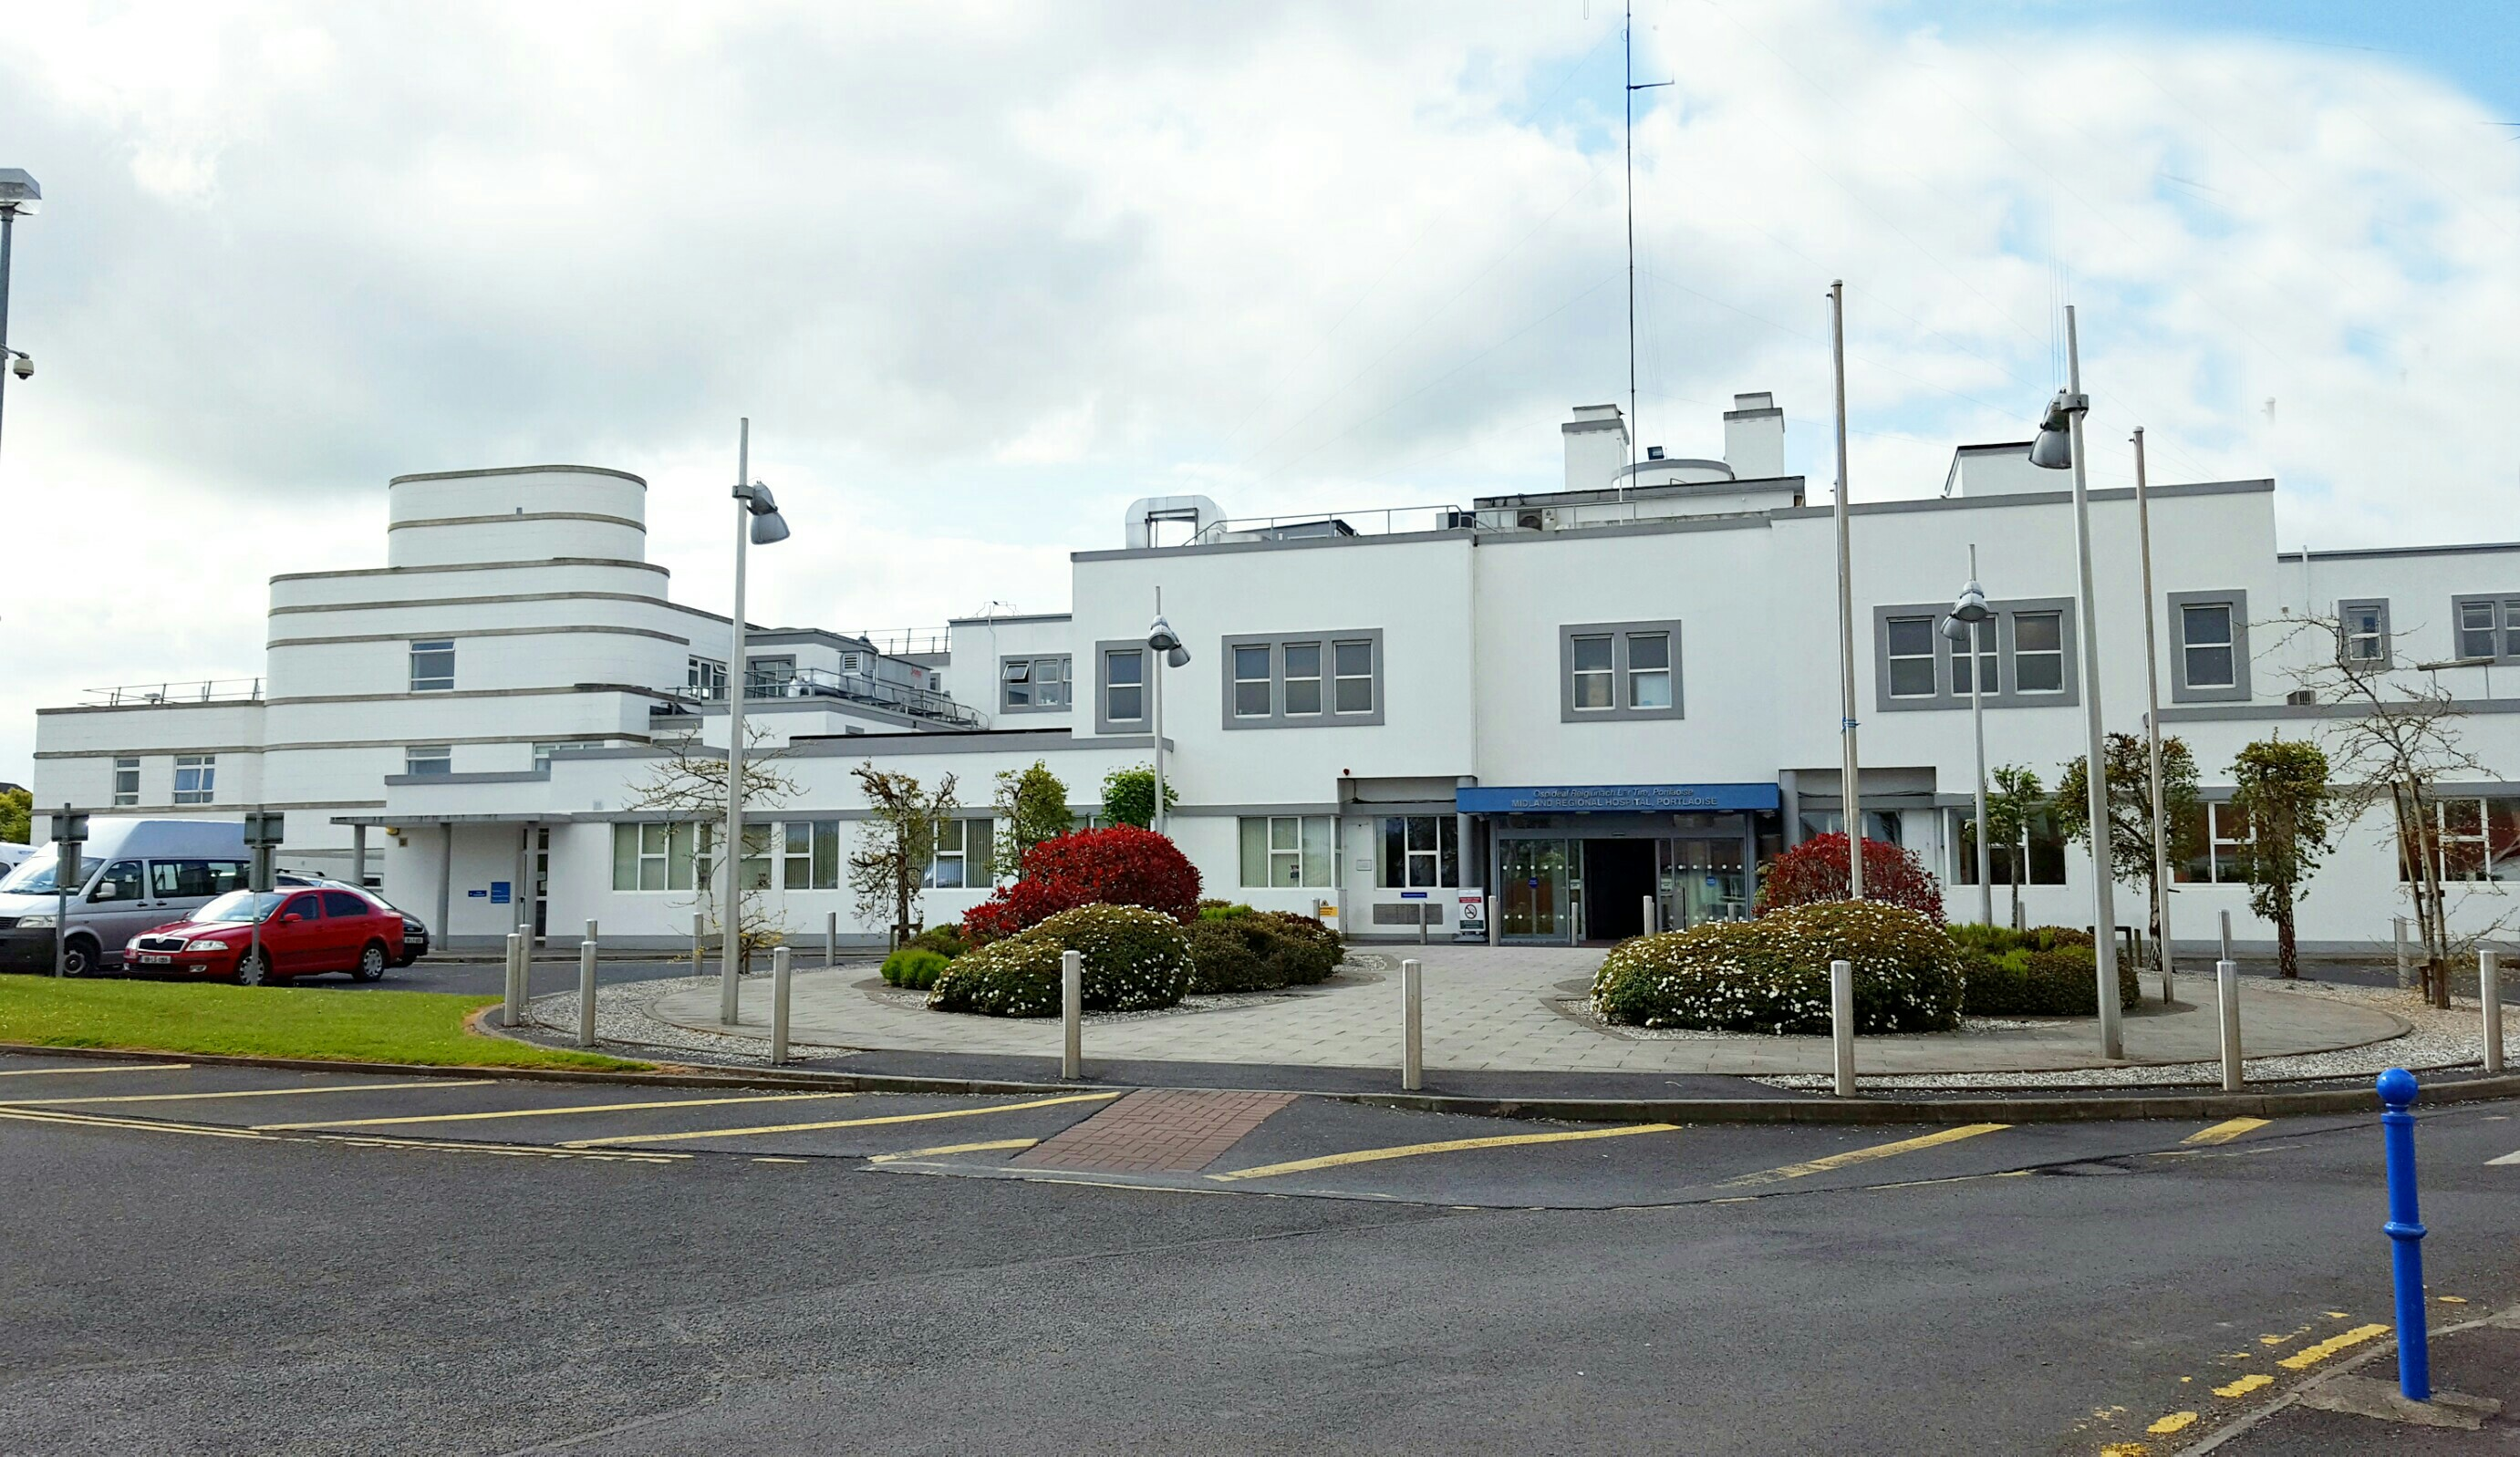 Maldron Hotel Portlaoise, Portlaoise Updated 2020 Prices